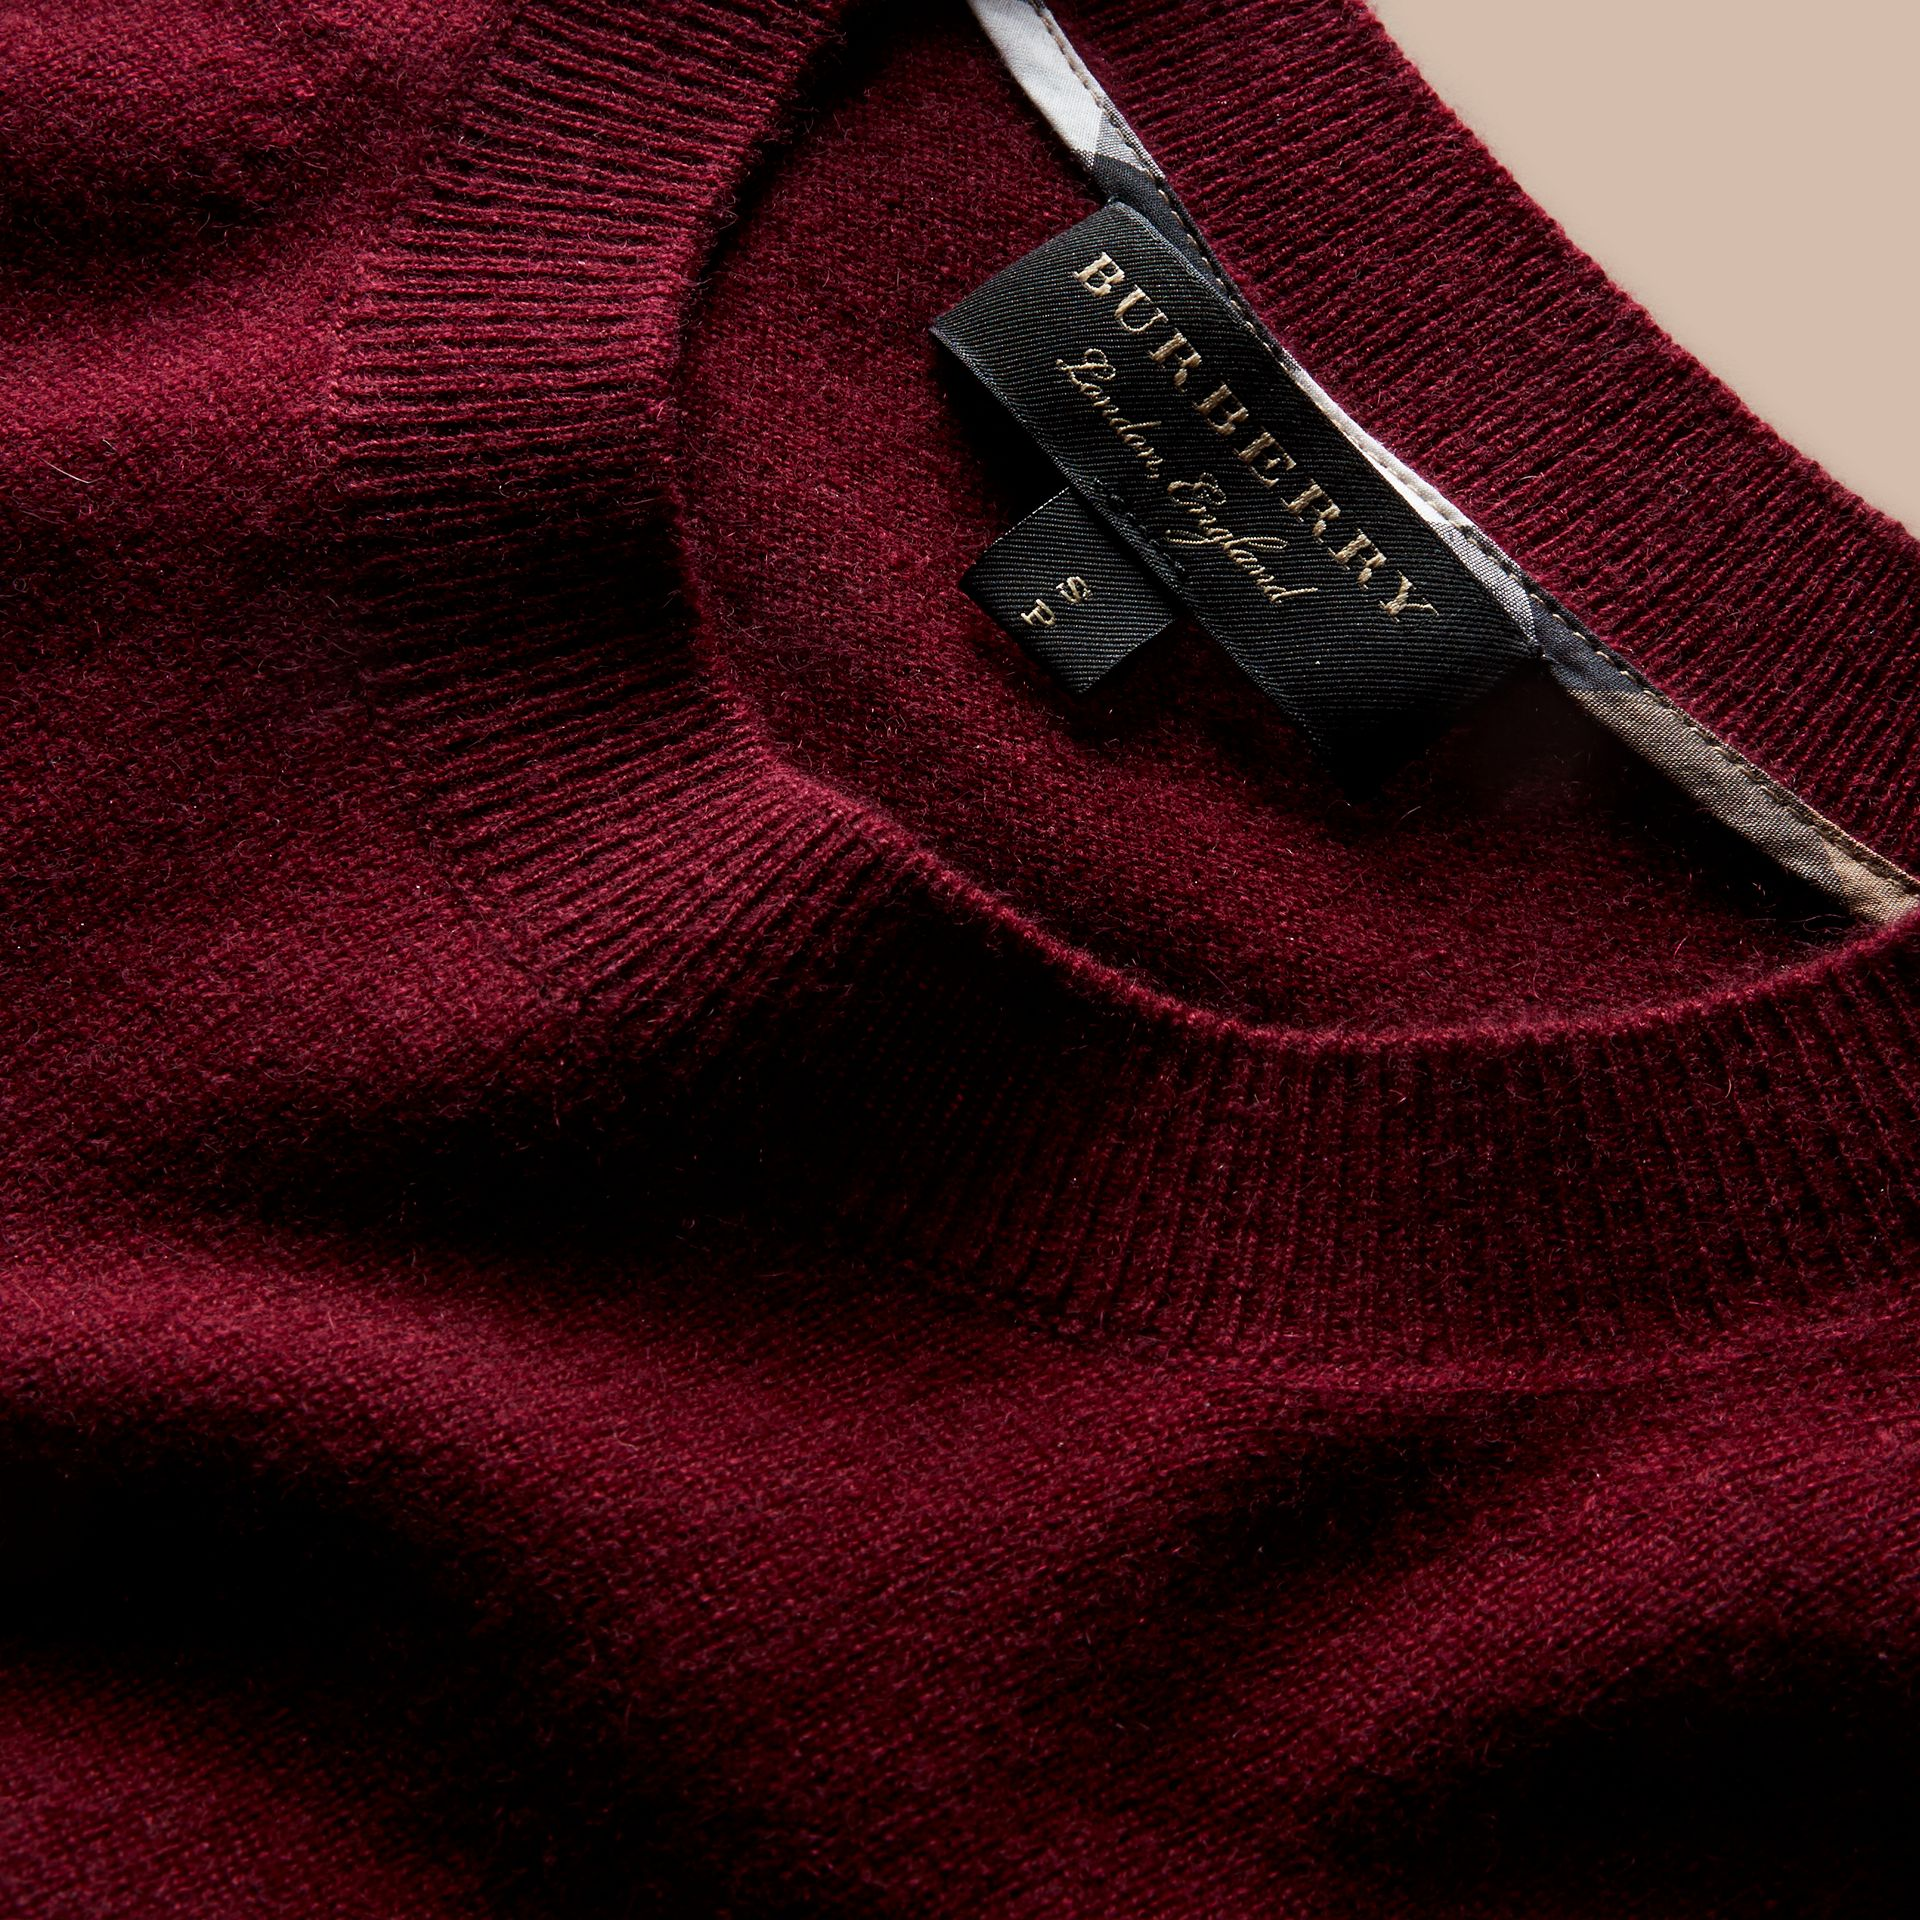 Burgundy Puff-sleeved Cashmere Sweater Burgundy - gallery image 2